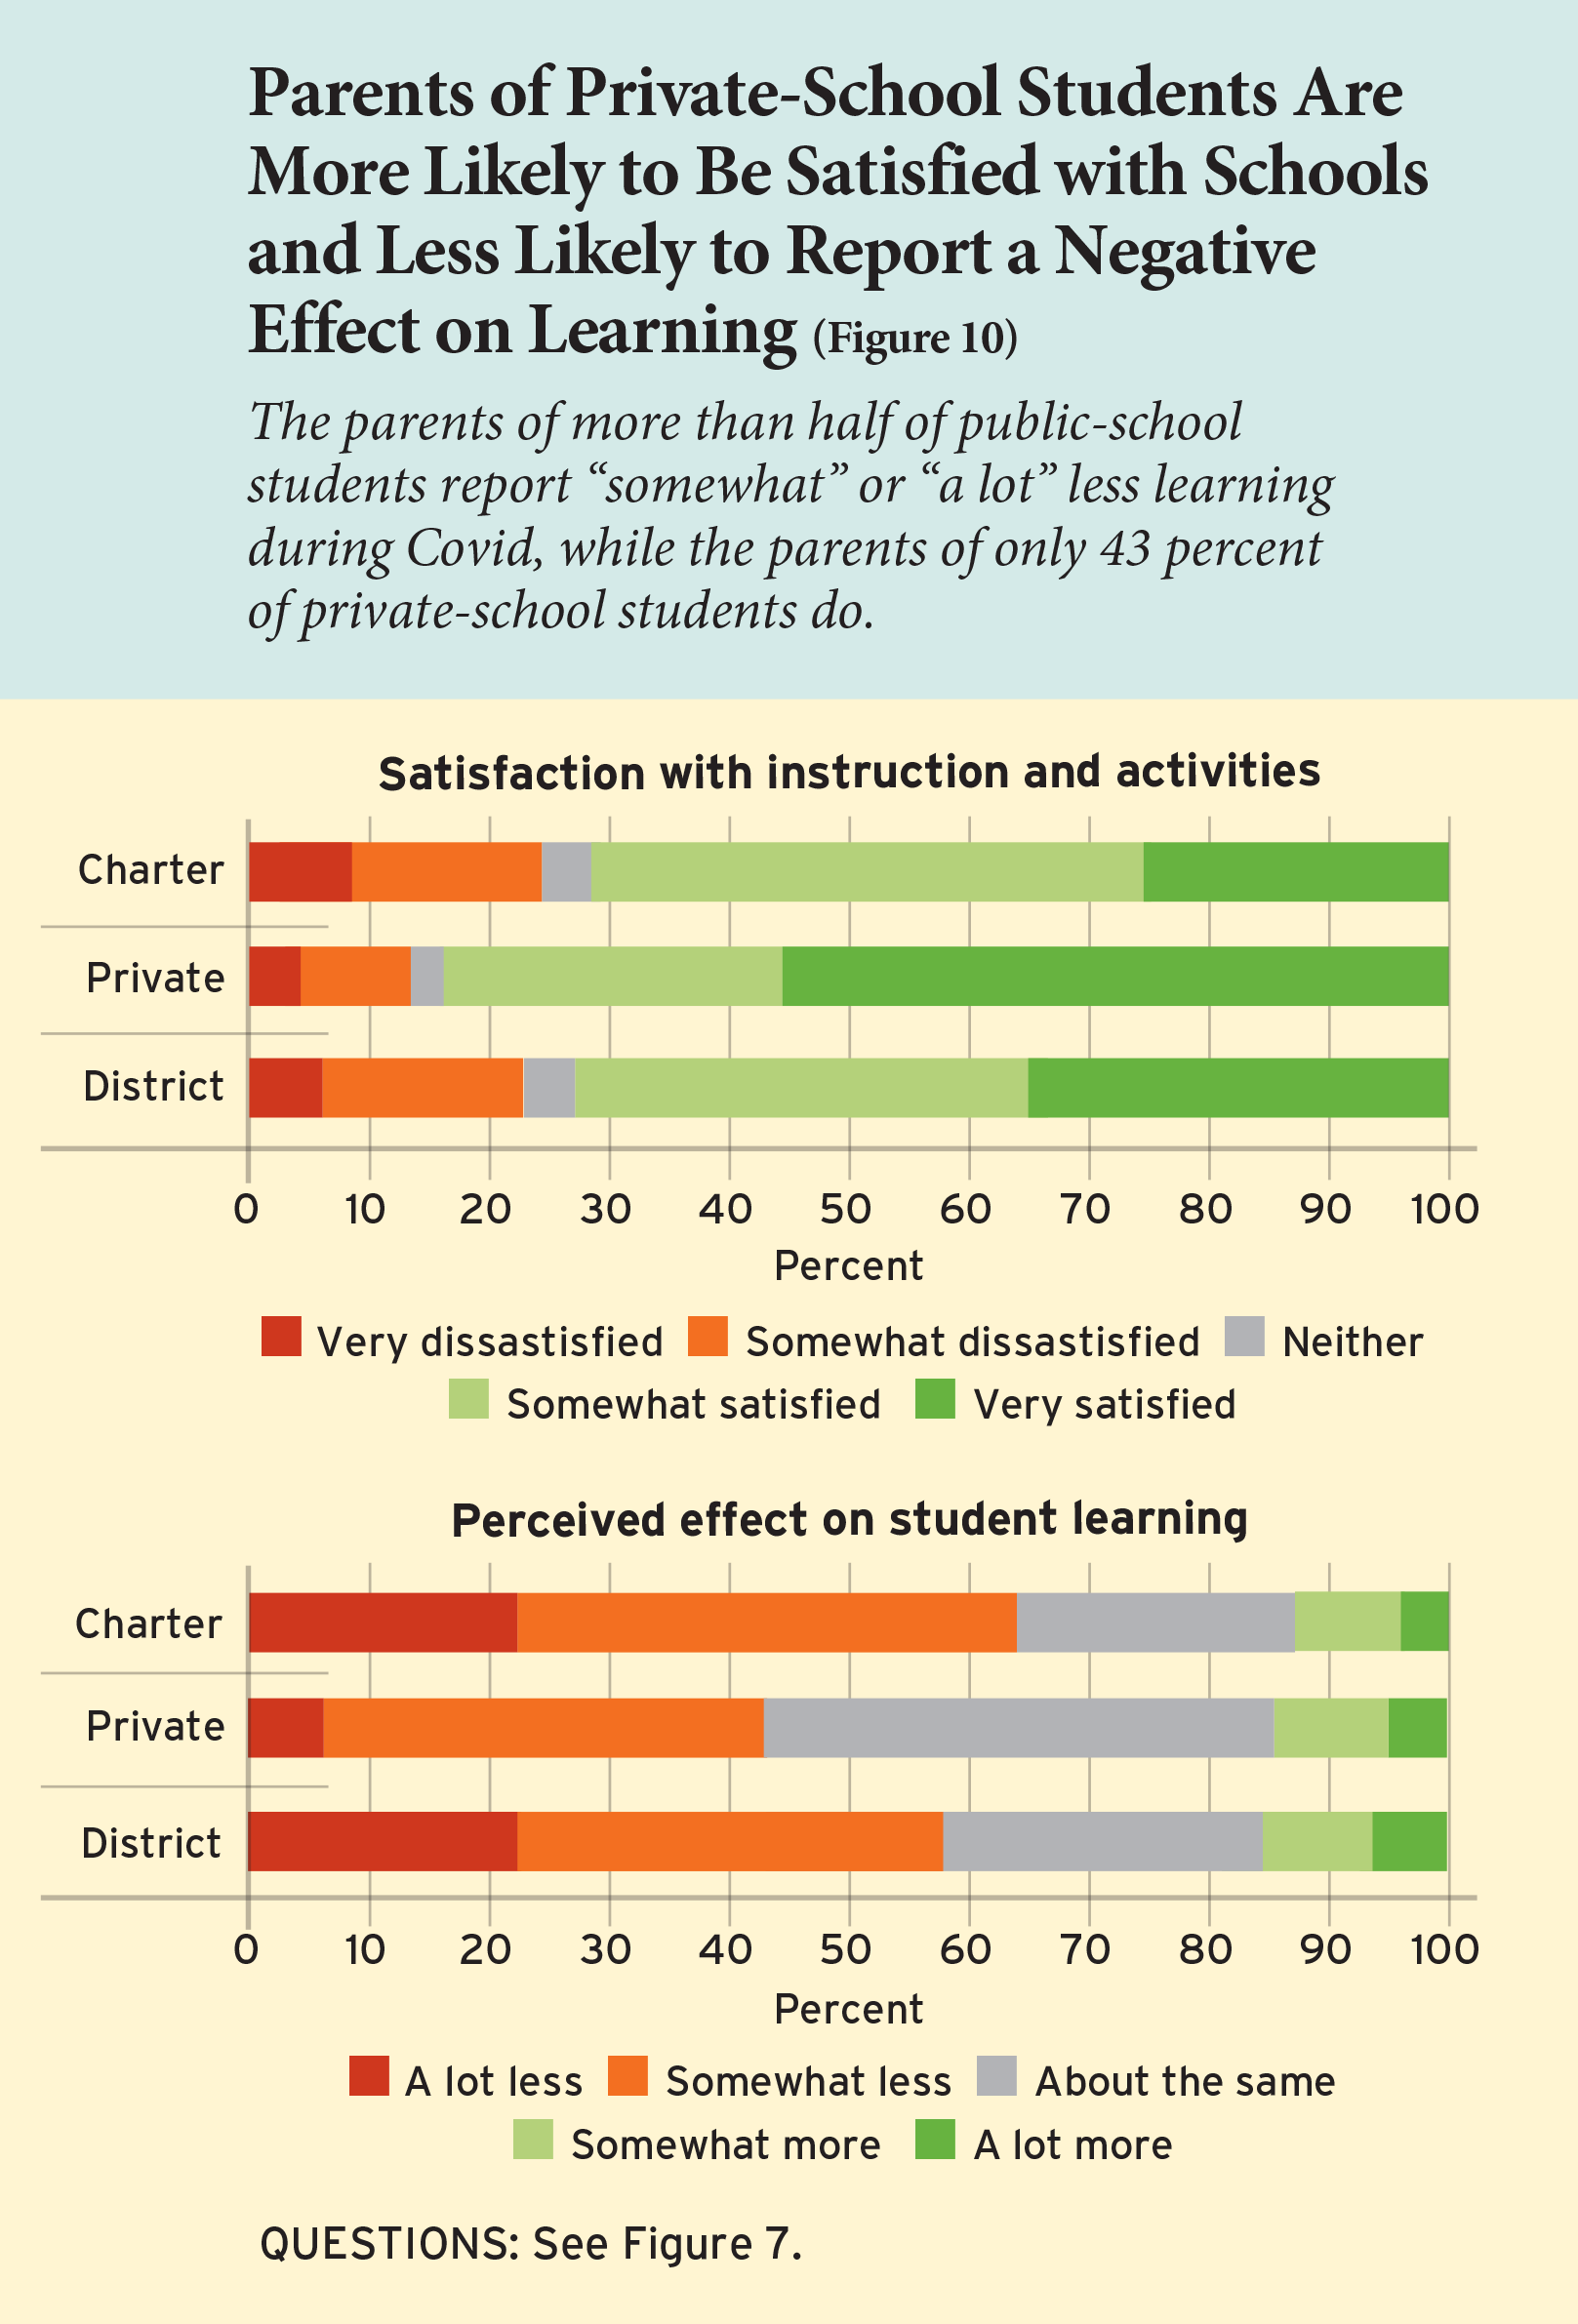 Parents of Private-School Students Are More Likely to Be Satisfied with Schools and Less Likely to Report a Negative Effect on Learning (Figure 10)